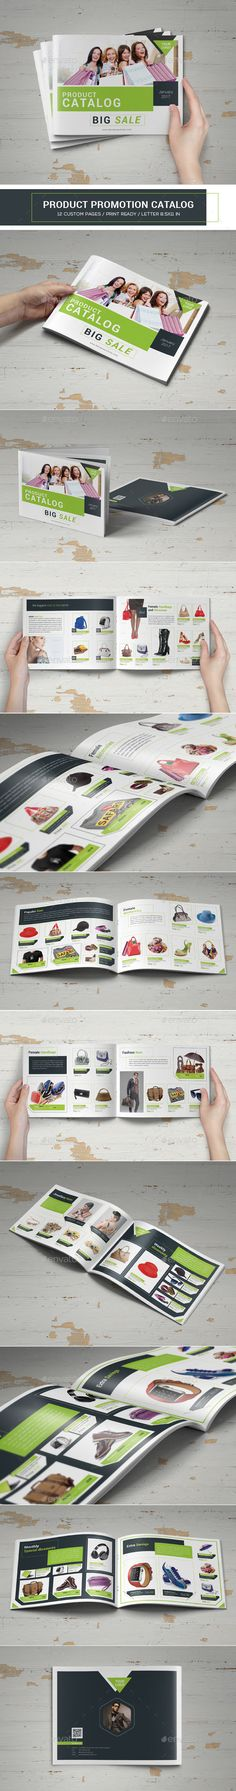 Buy Product Promotion Catalog by on GraphicRiver. This indesign template can be used for business and personal uses. Features US Letter Size 12 Pages InDesign Template. Stencil Templates, Indesign Templates, Newsletter Templates, Menu Templates, Travel Brochure Template, Brochure Design, Product Catalog Template, Product Catalogue, Catalog Design